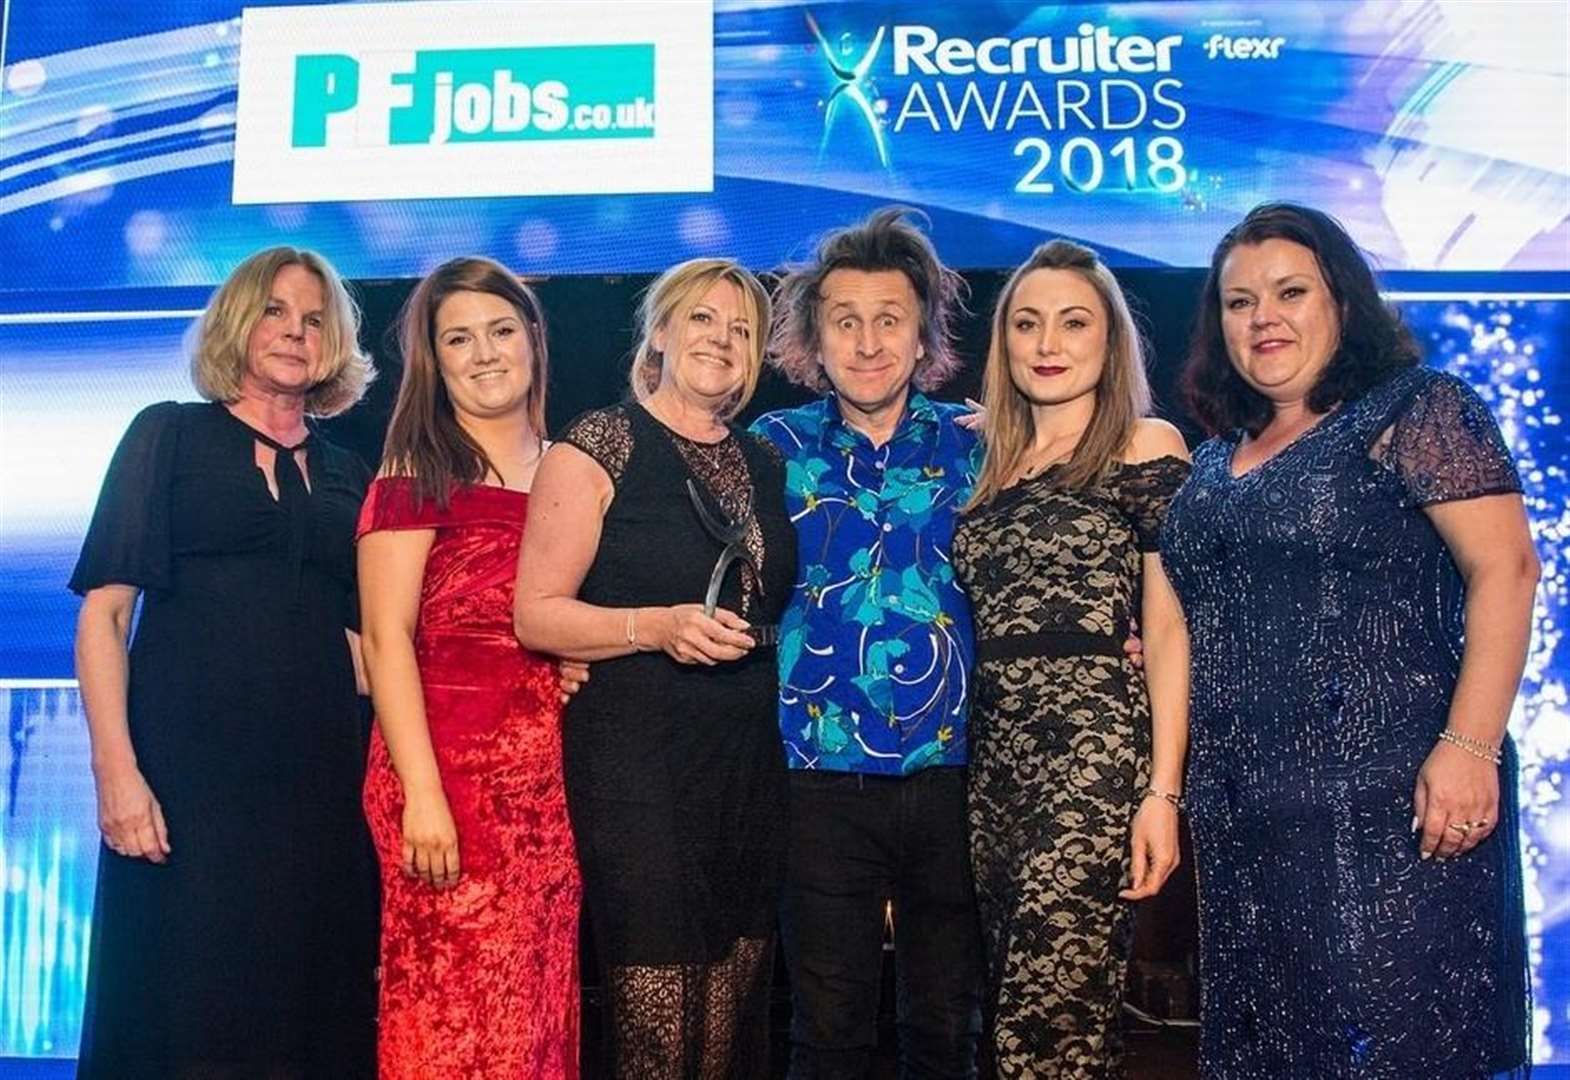 Authority's recruitment team scoops top award